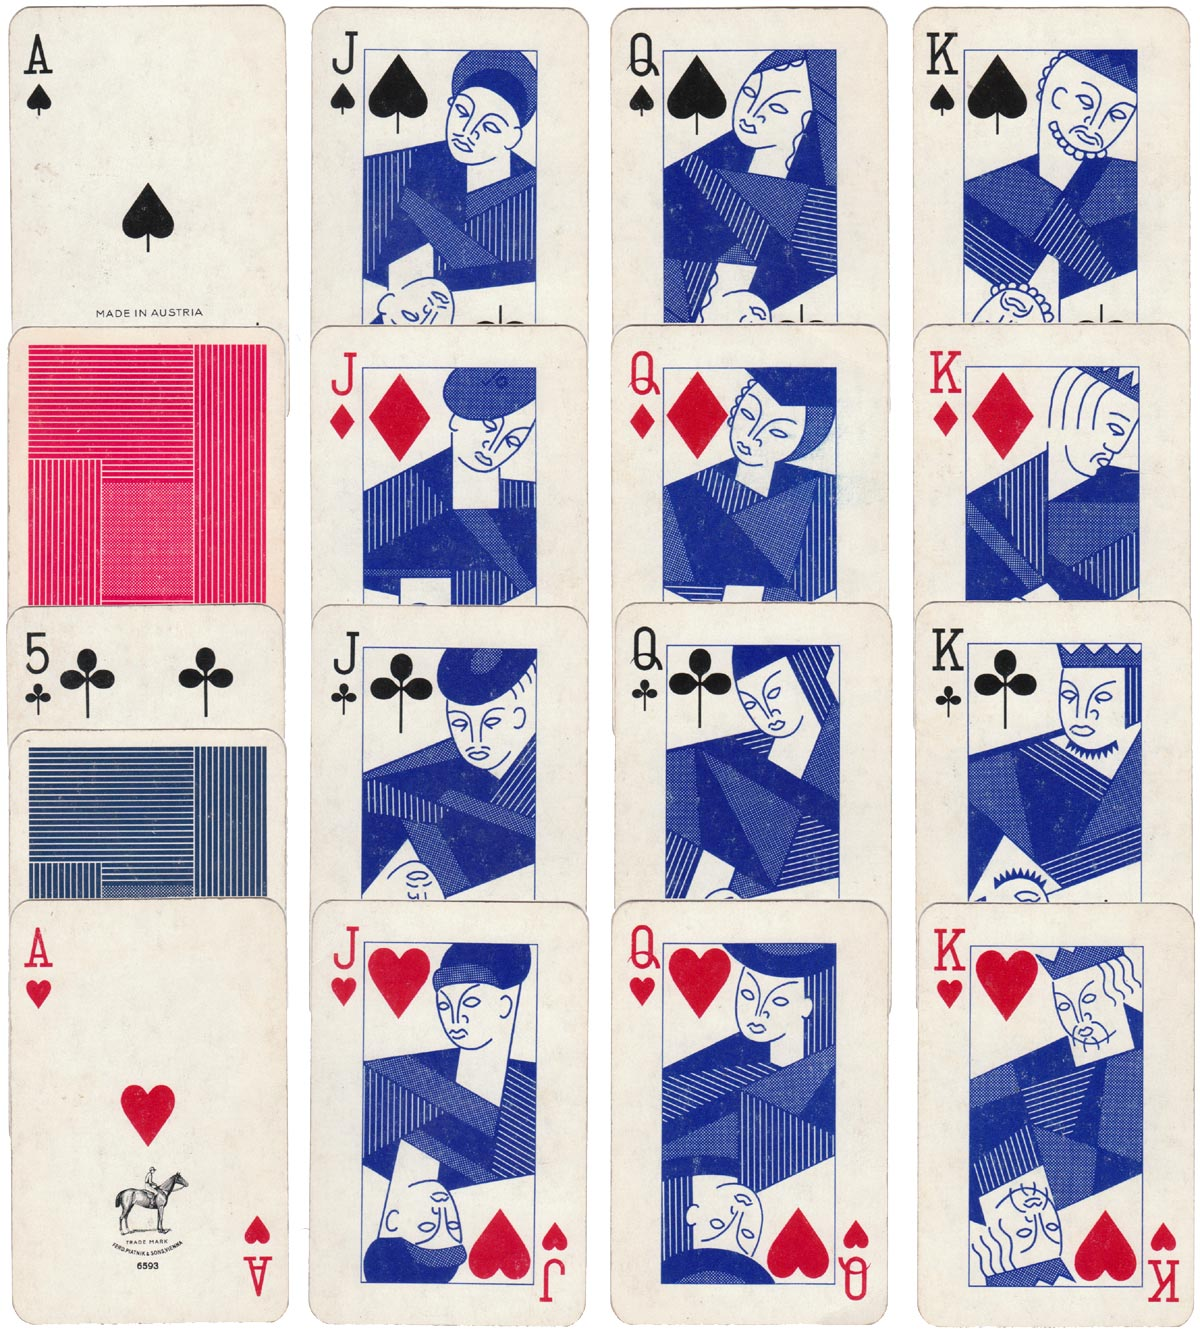 """Blue Playing Cards"" by Piatnik, 1960s"